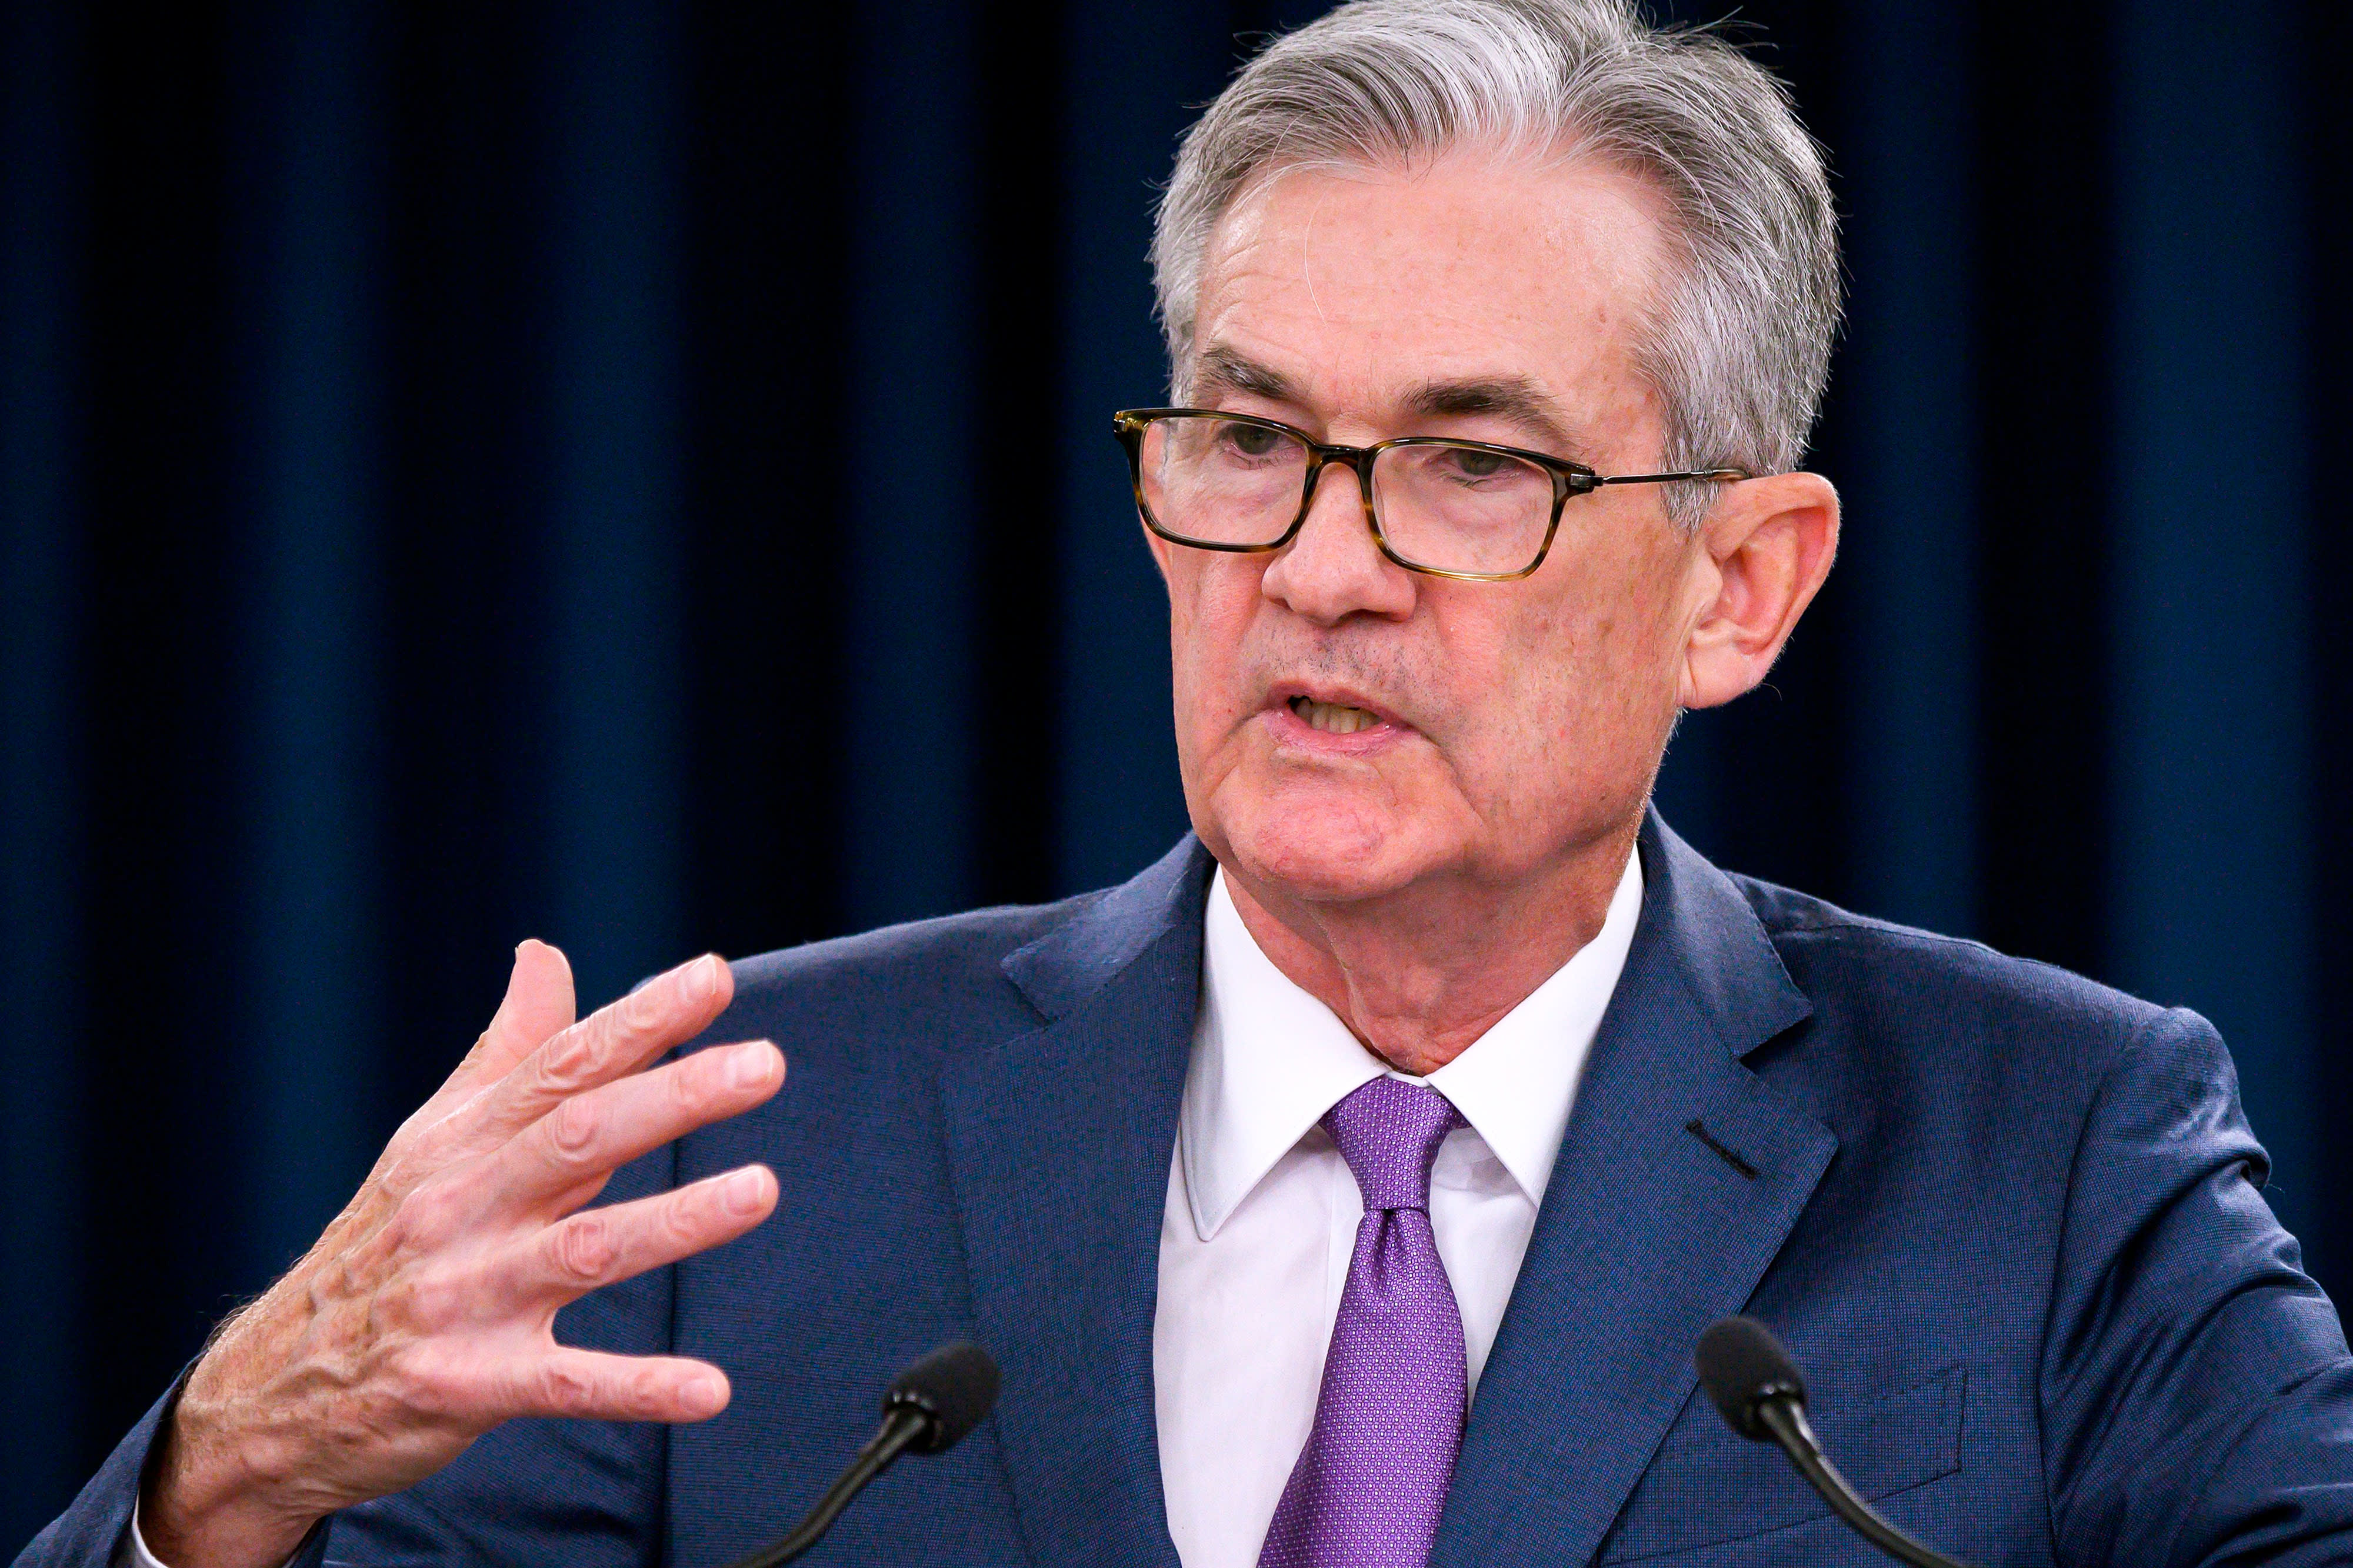 Fed disappoints markets by sounding more 'neutral' than dovish